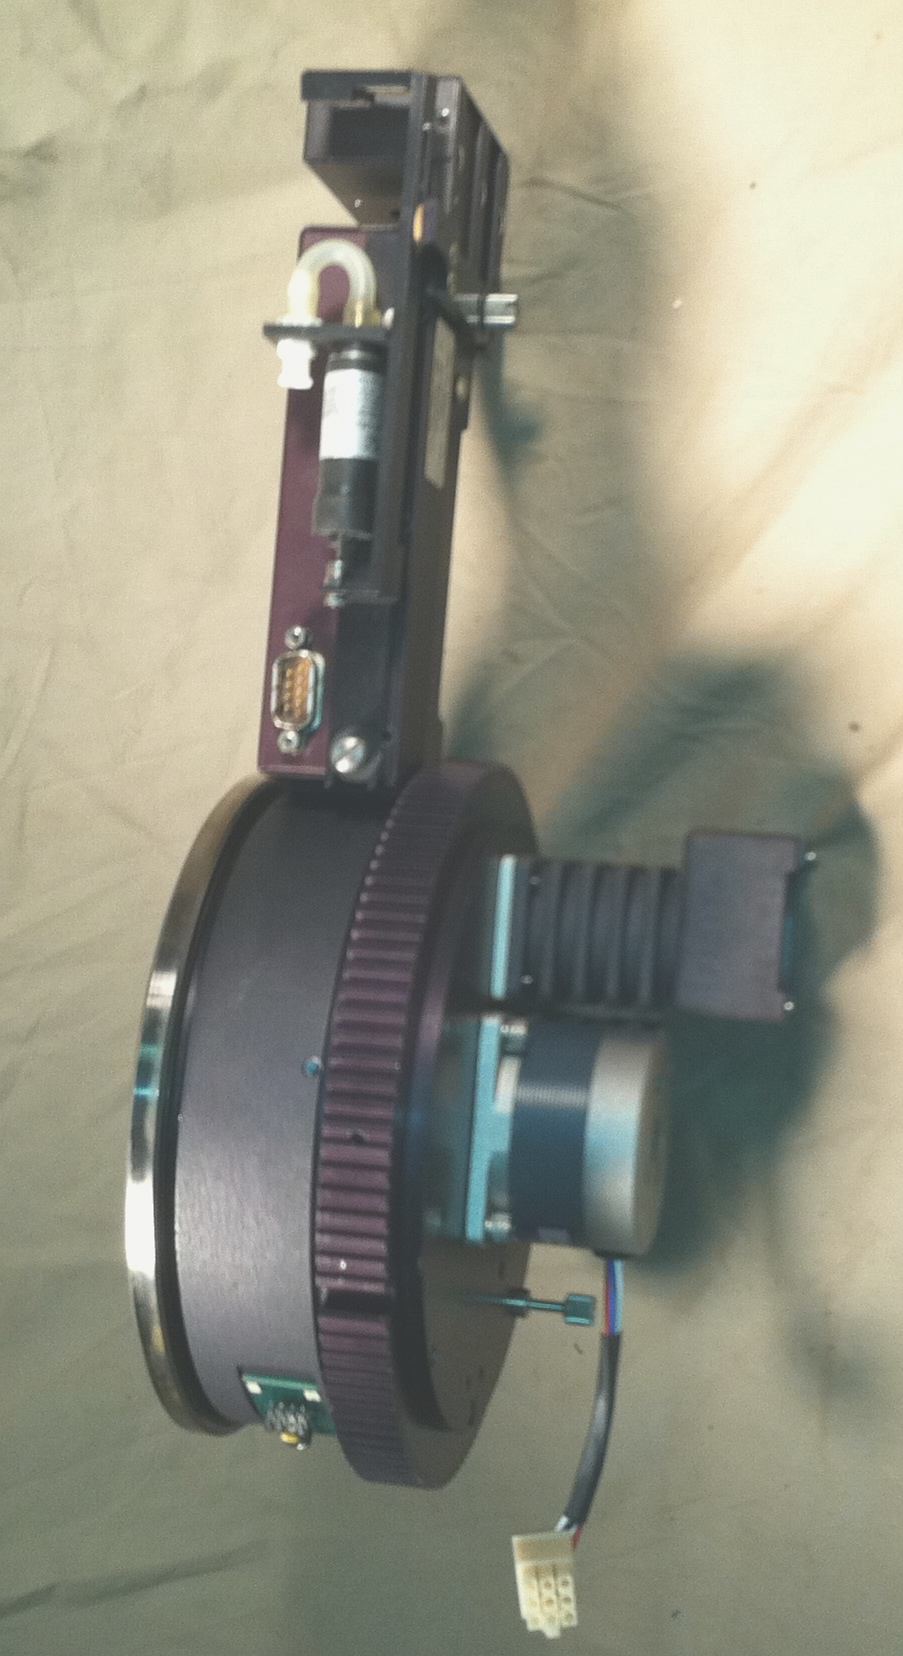 Siemens Dimension Xpand Filter wheel motor assembly